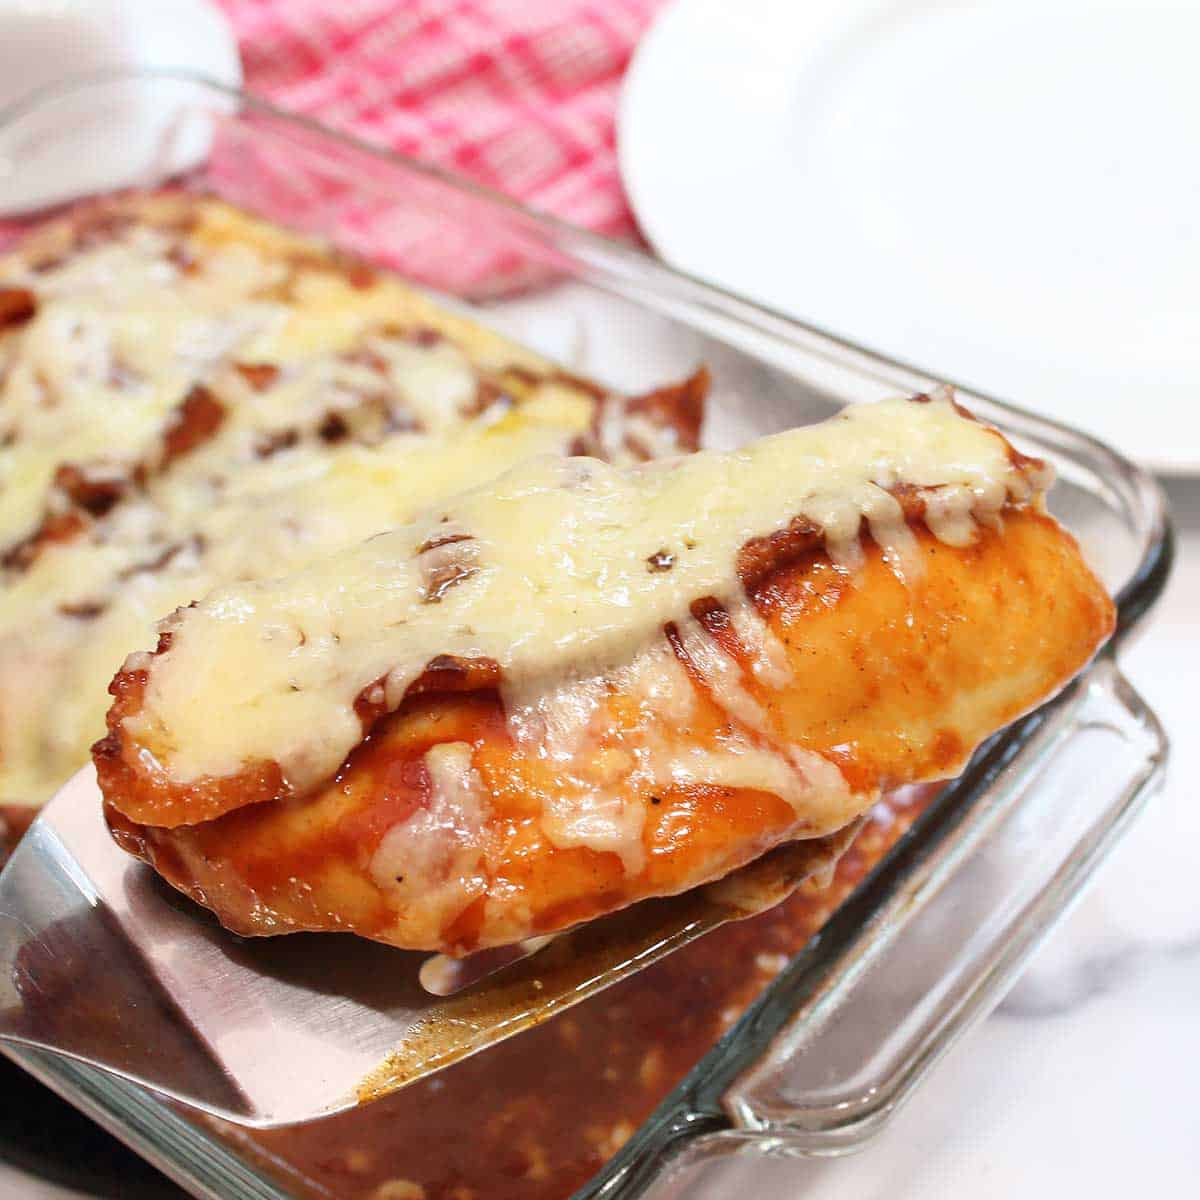 Lifting baked chicken breast out of baking dish.